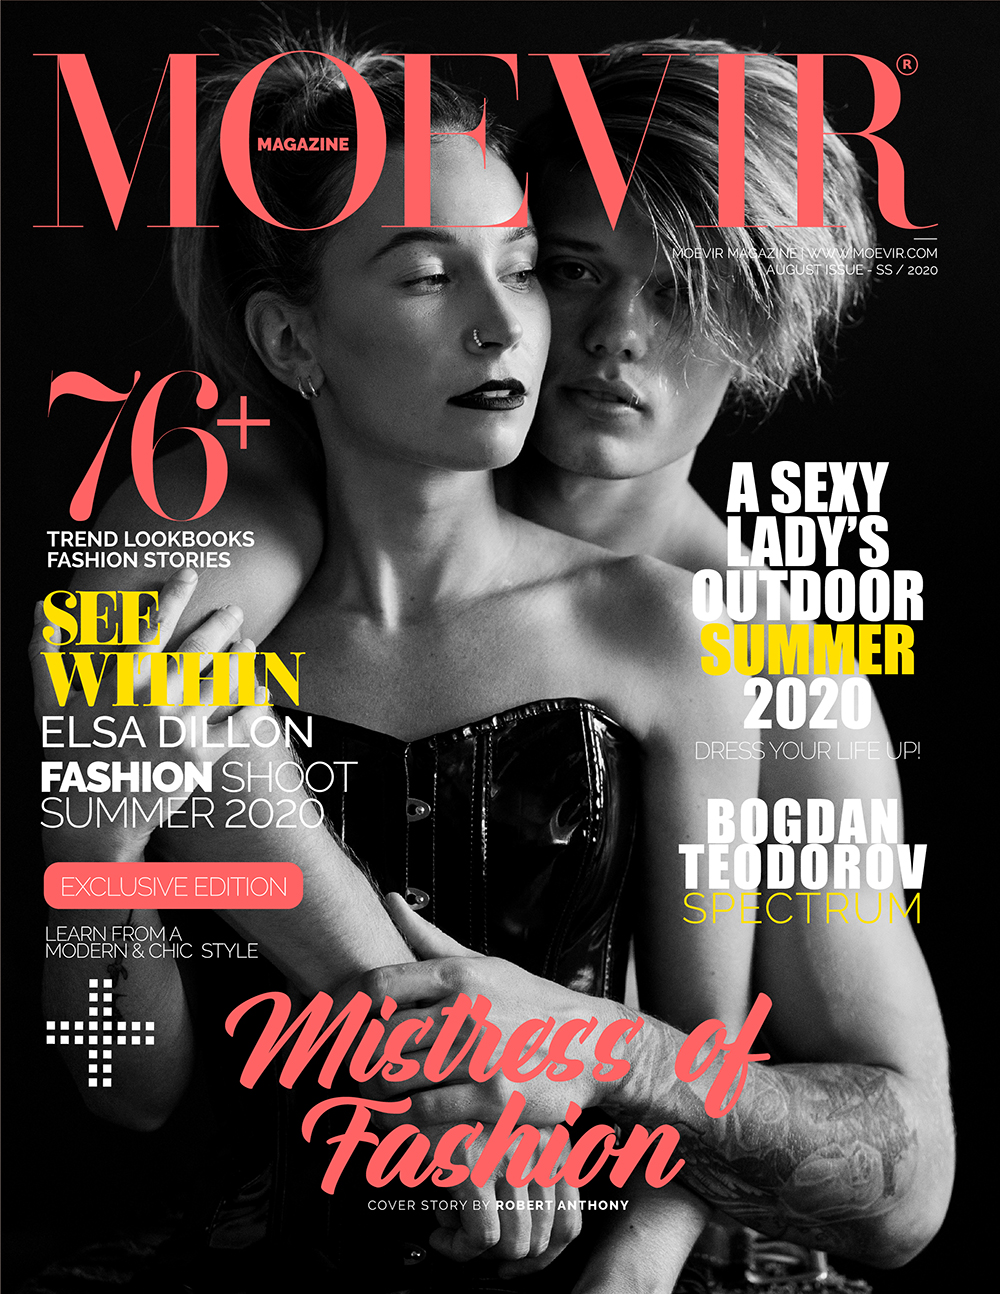 Moevir Magazine August Issue